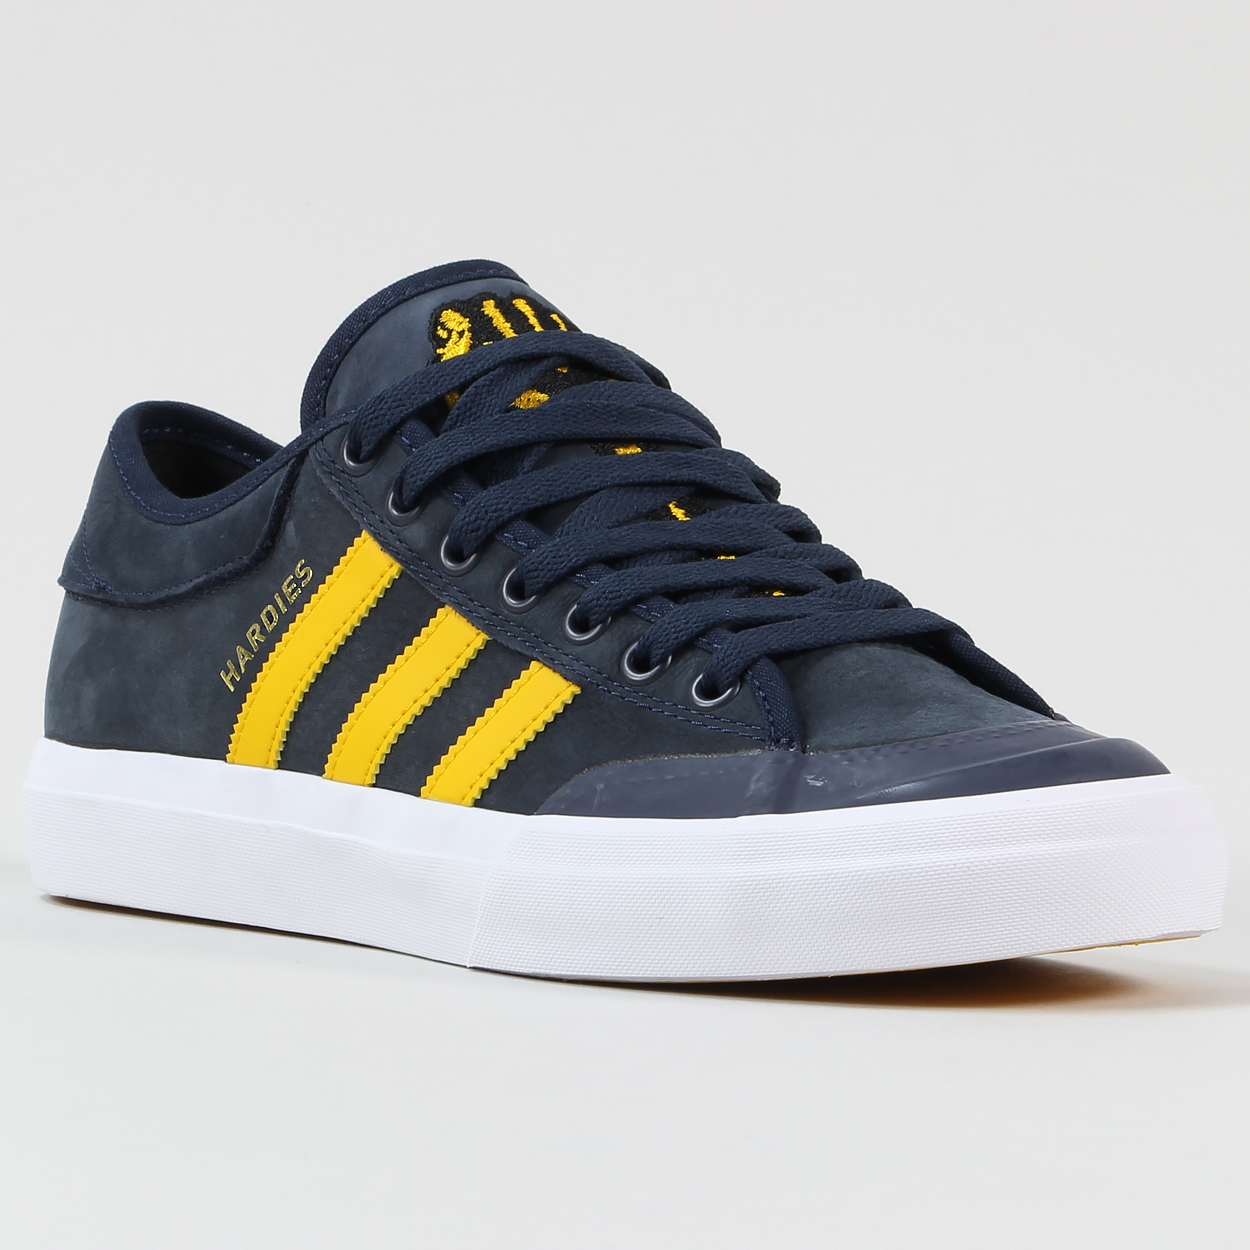 pretty nice 06b07 fc2b1 The Three Stripes in collab with Hardies Hardware bring us these proper bad  boy Matchcourts! Get some before they're all snapped up. Adidas